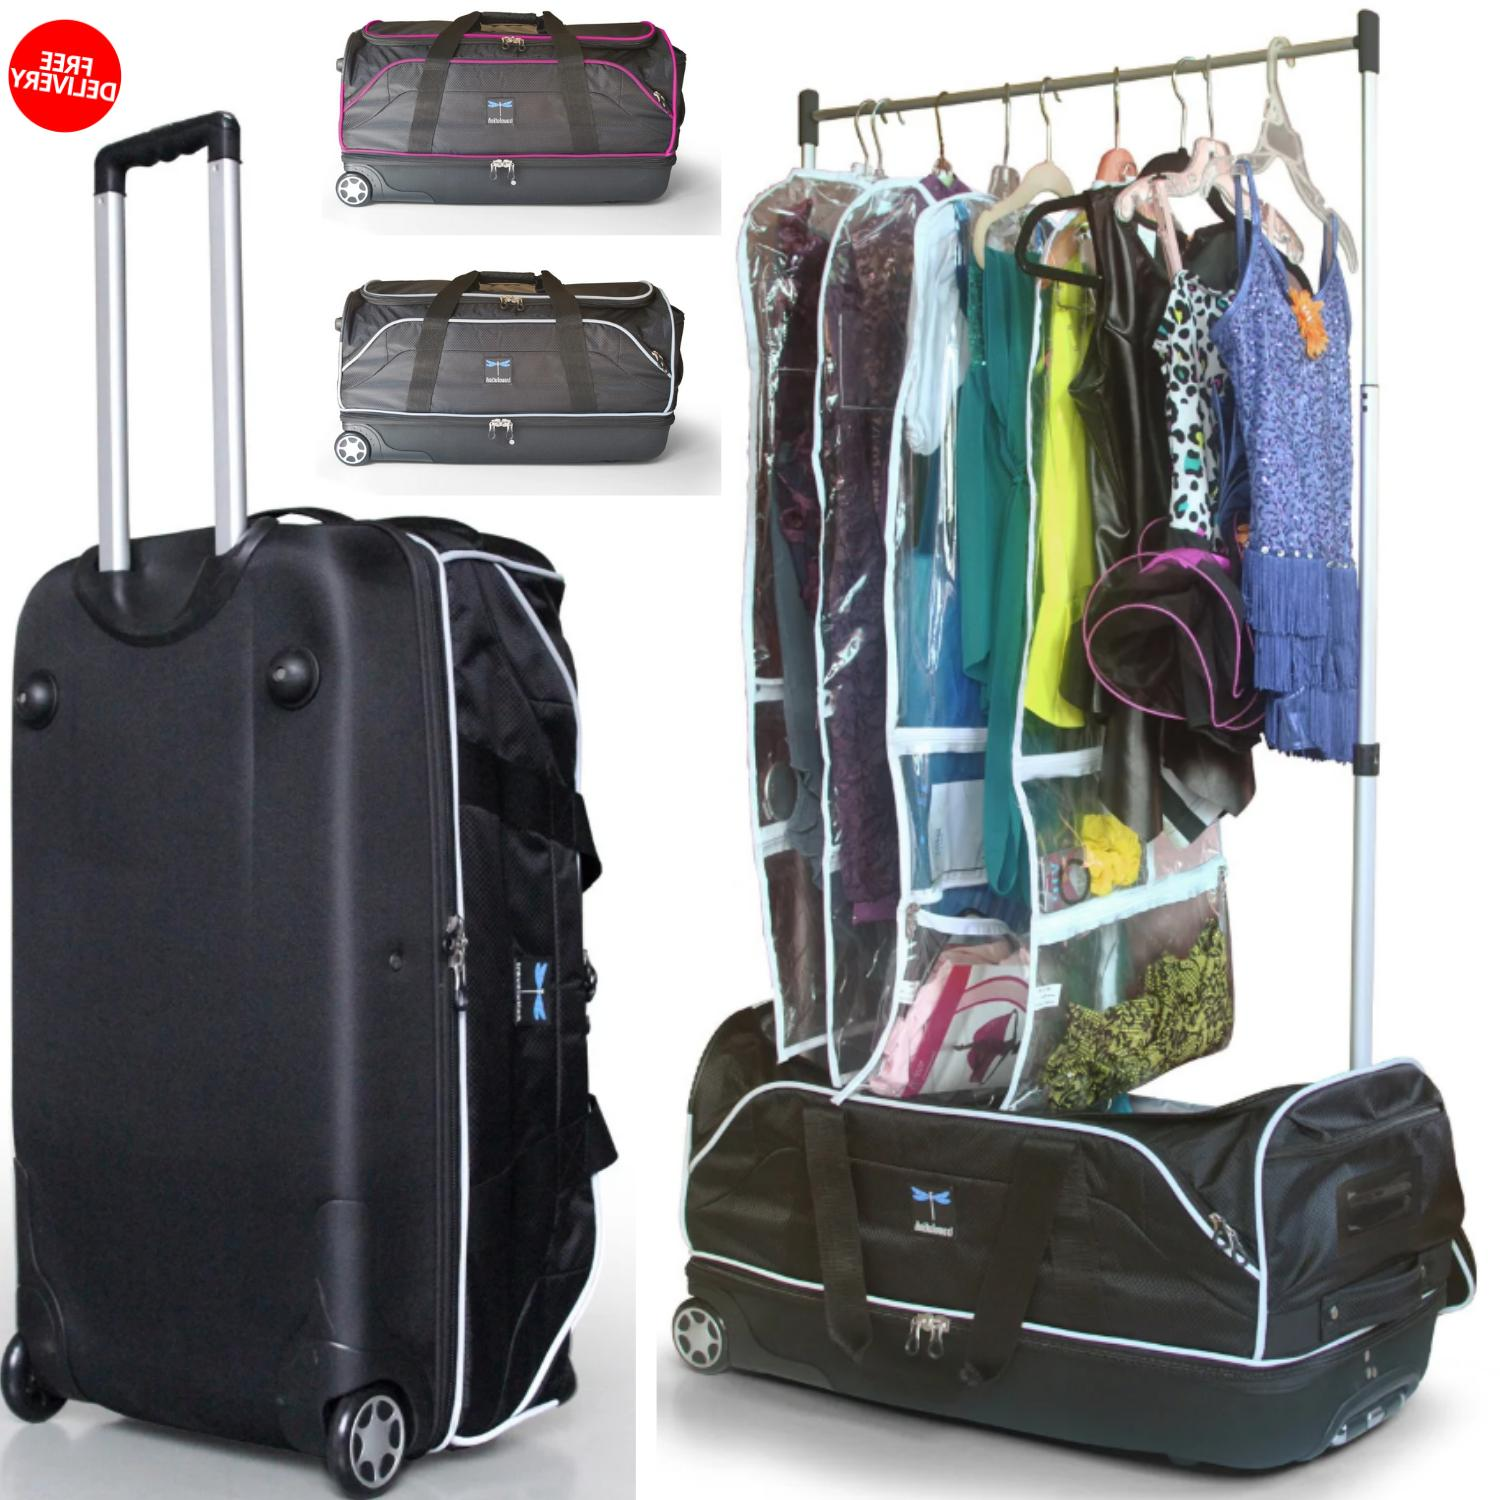 Duffel Bag With Garment Rack And Multi Compartment & 28 Inch